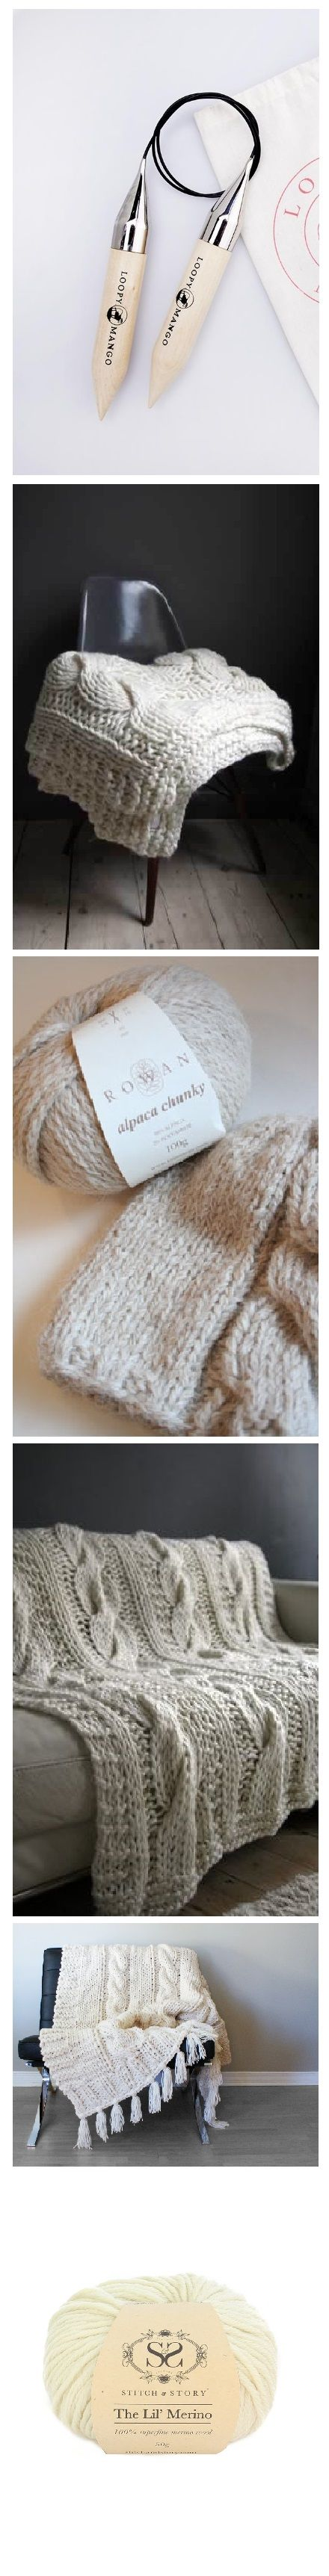 17 Best images about Blankets on Pinterest Cable, Cable knit throw and Chun...